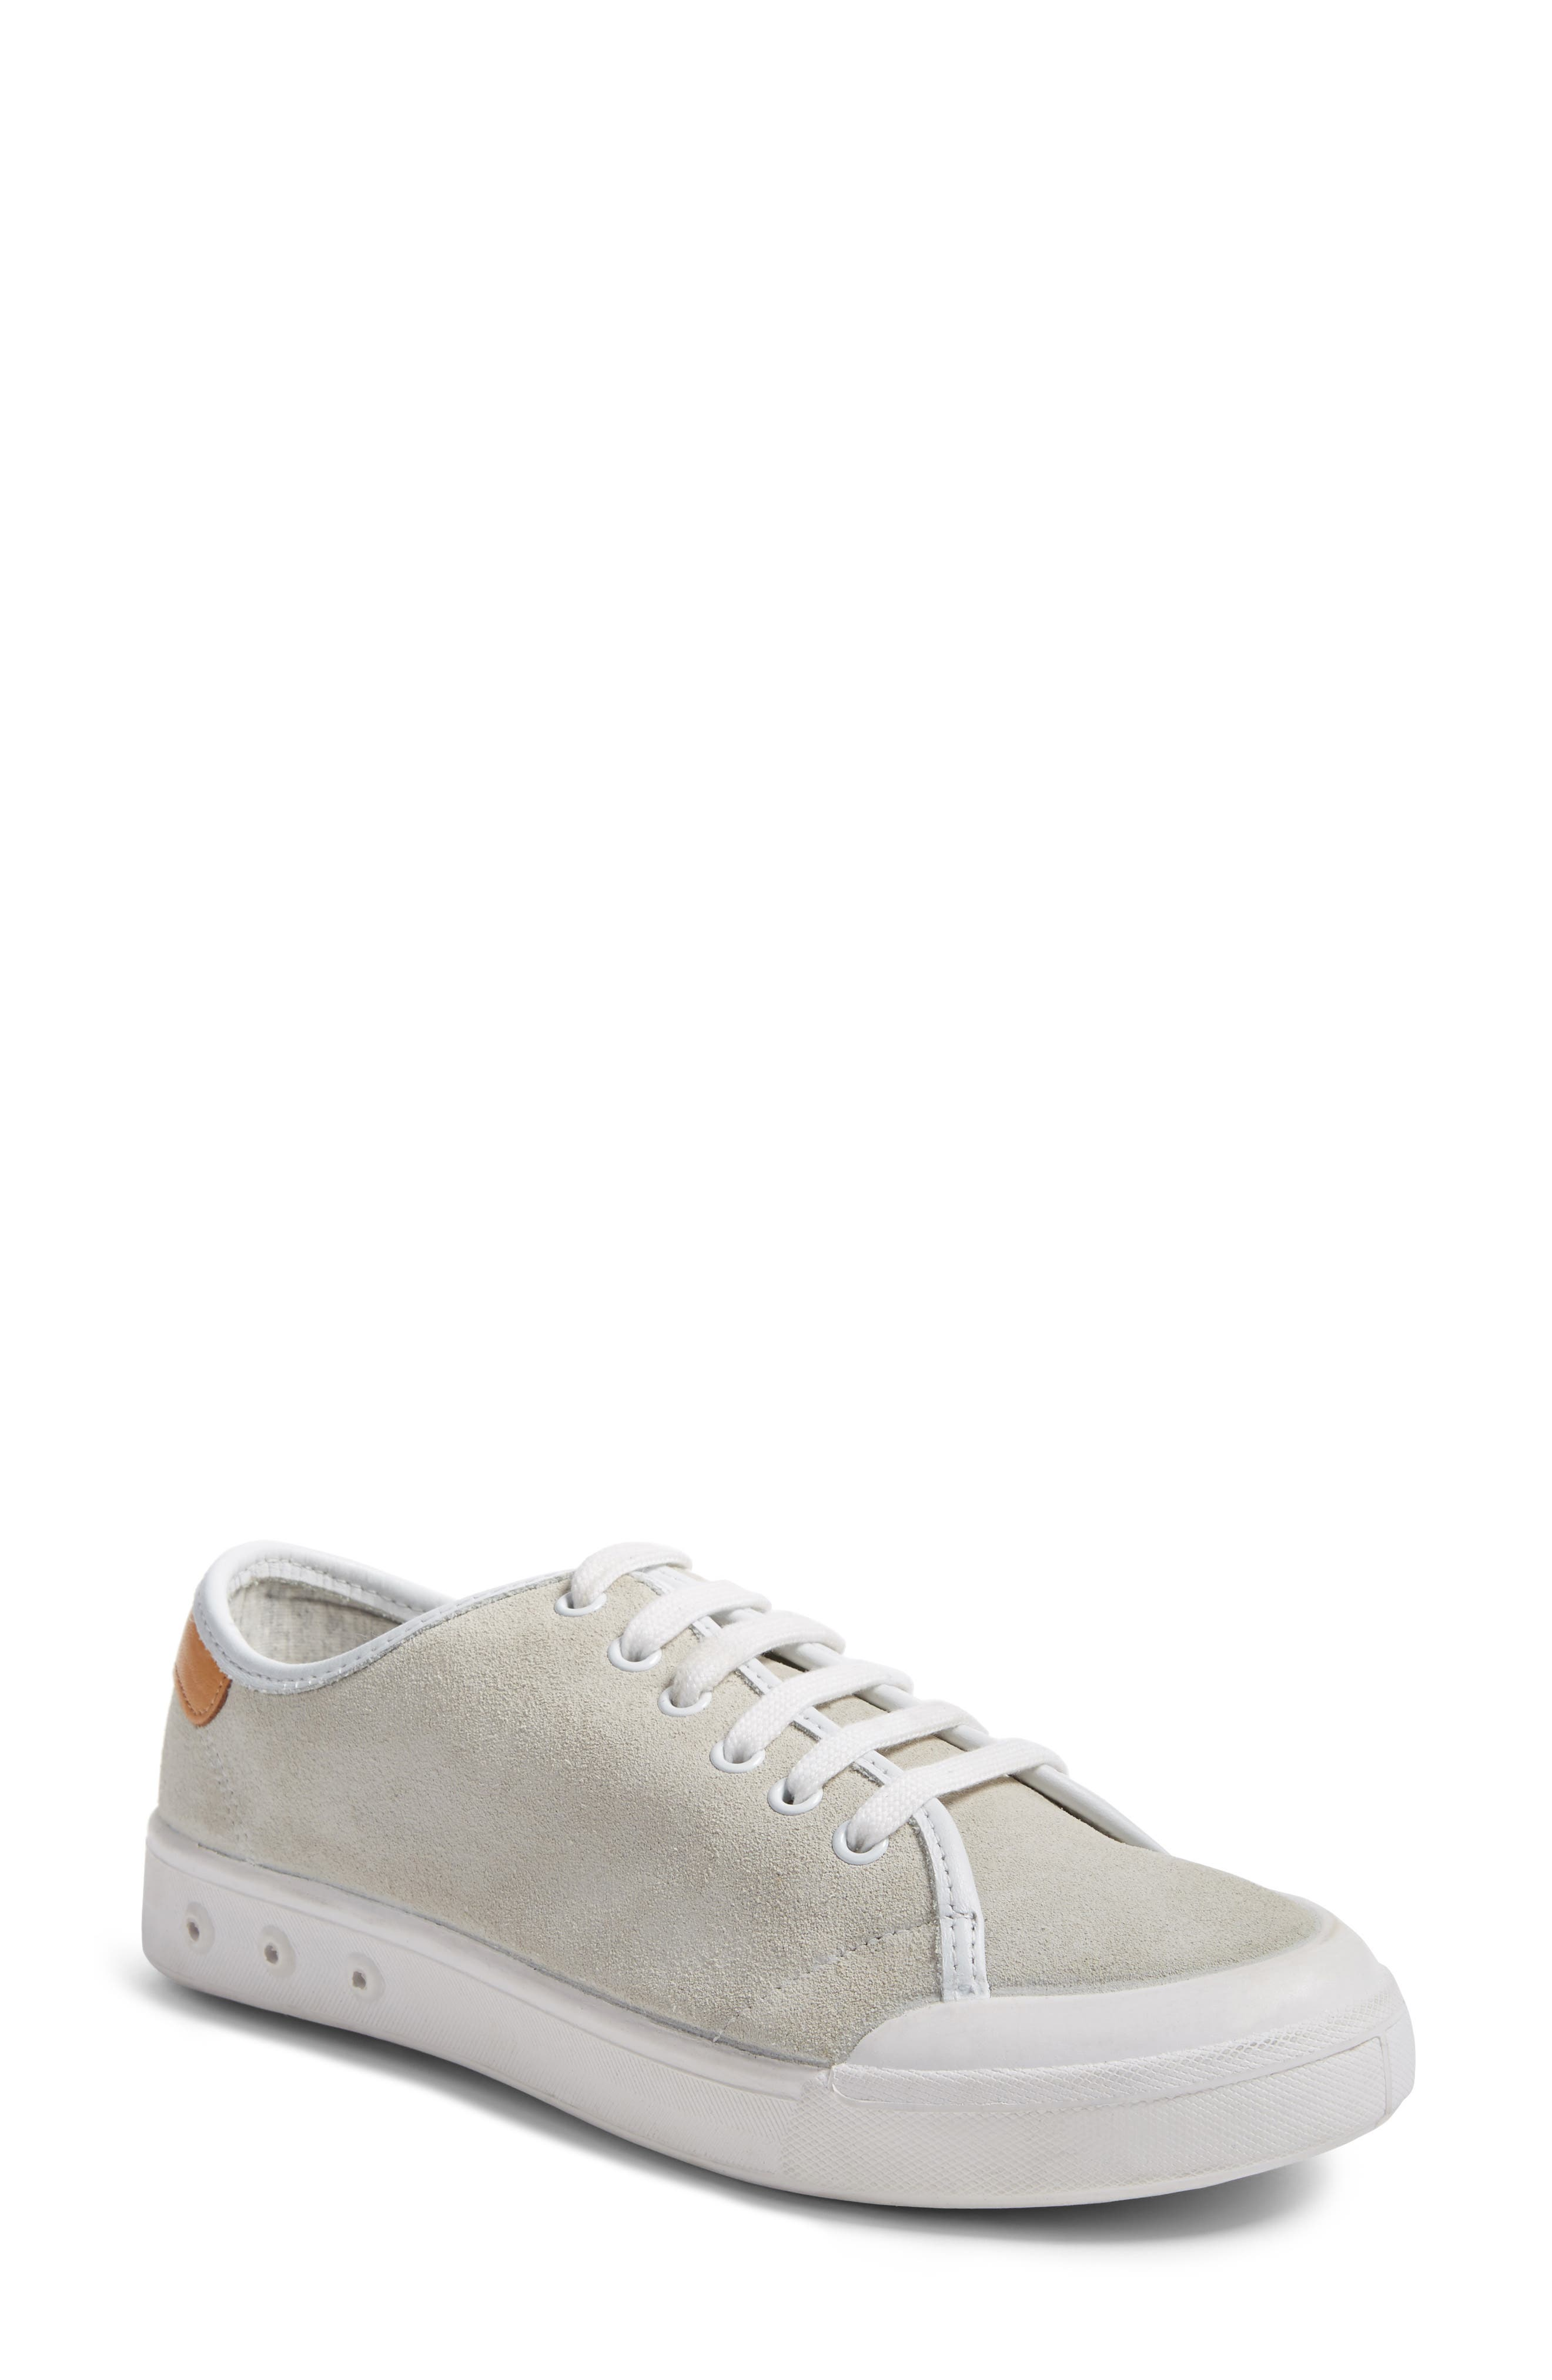 Standard Issue Sneaker,                             Main thumbnail 1, color,